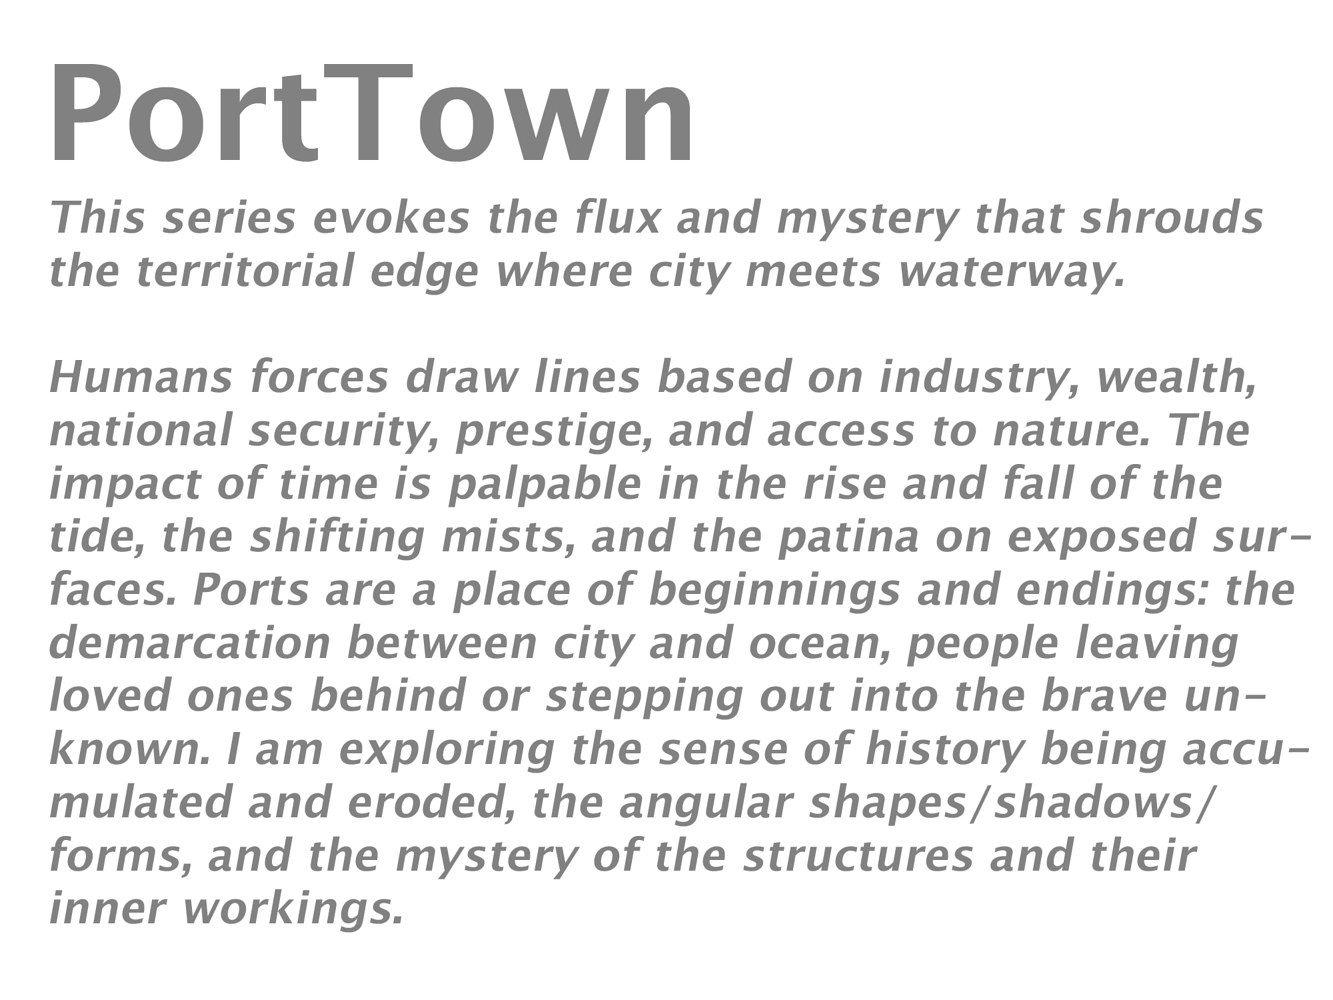 About the PortTown series... by Lori Sokoluk